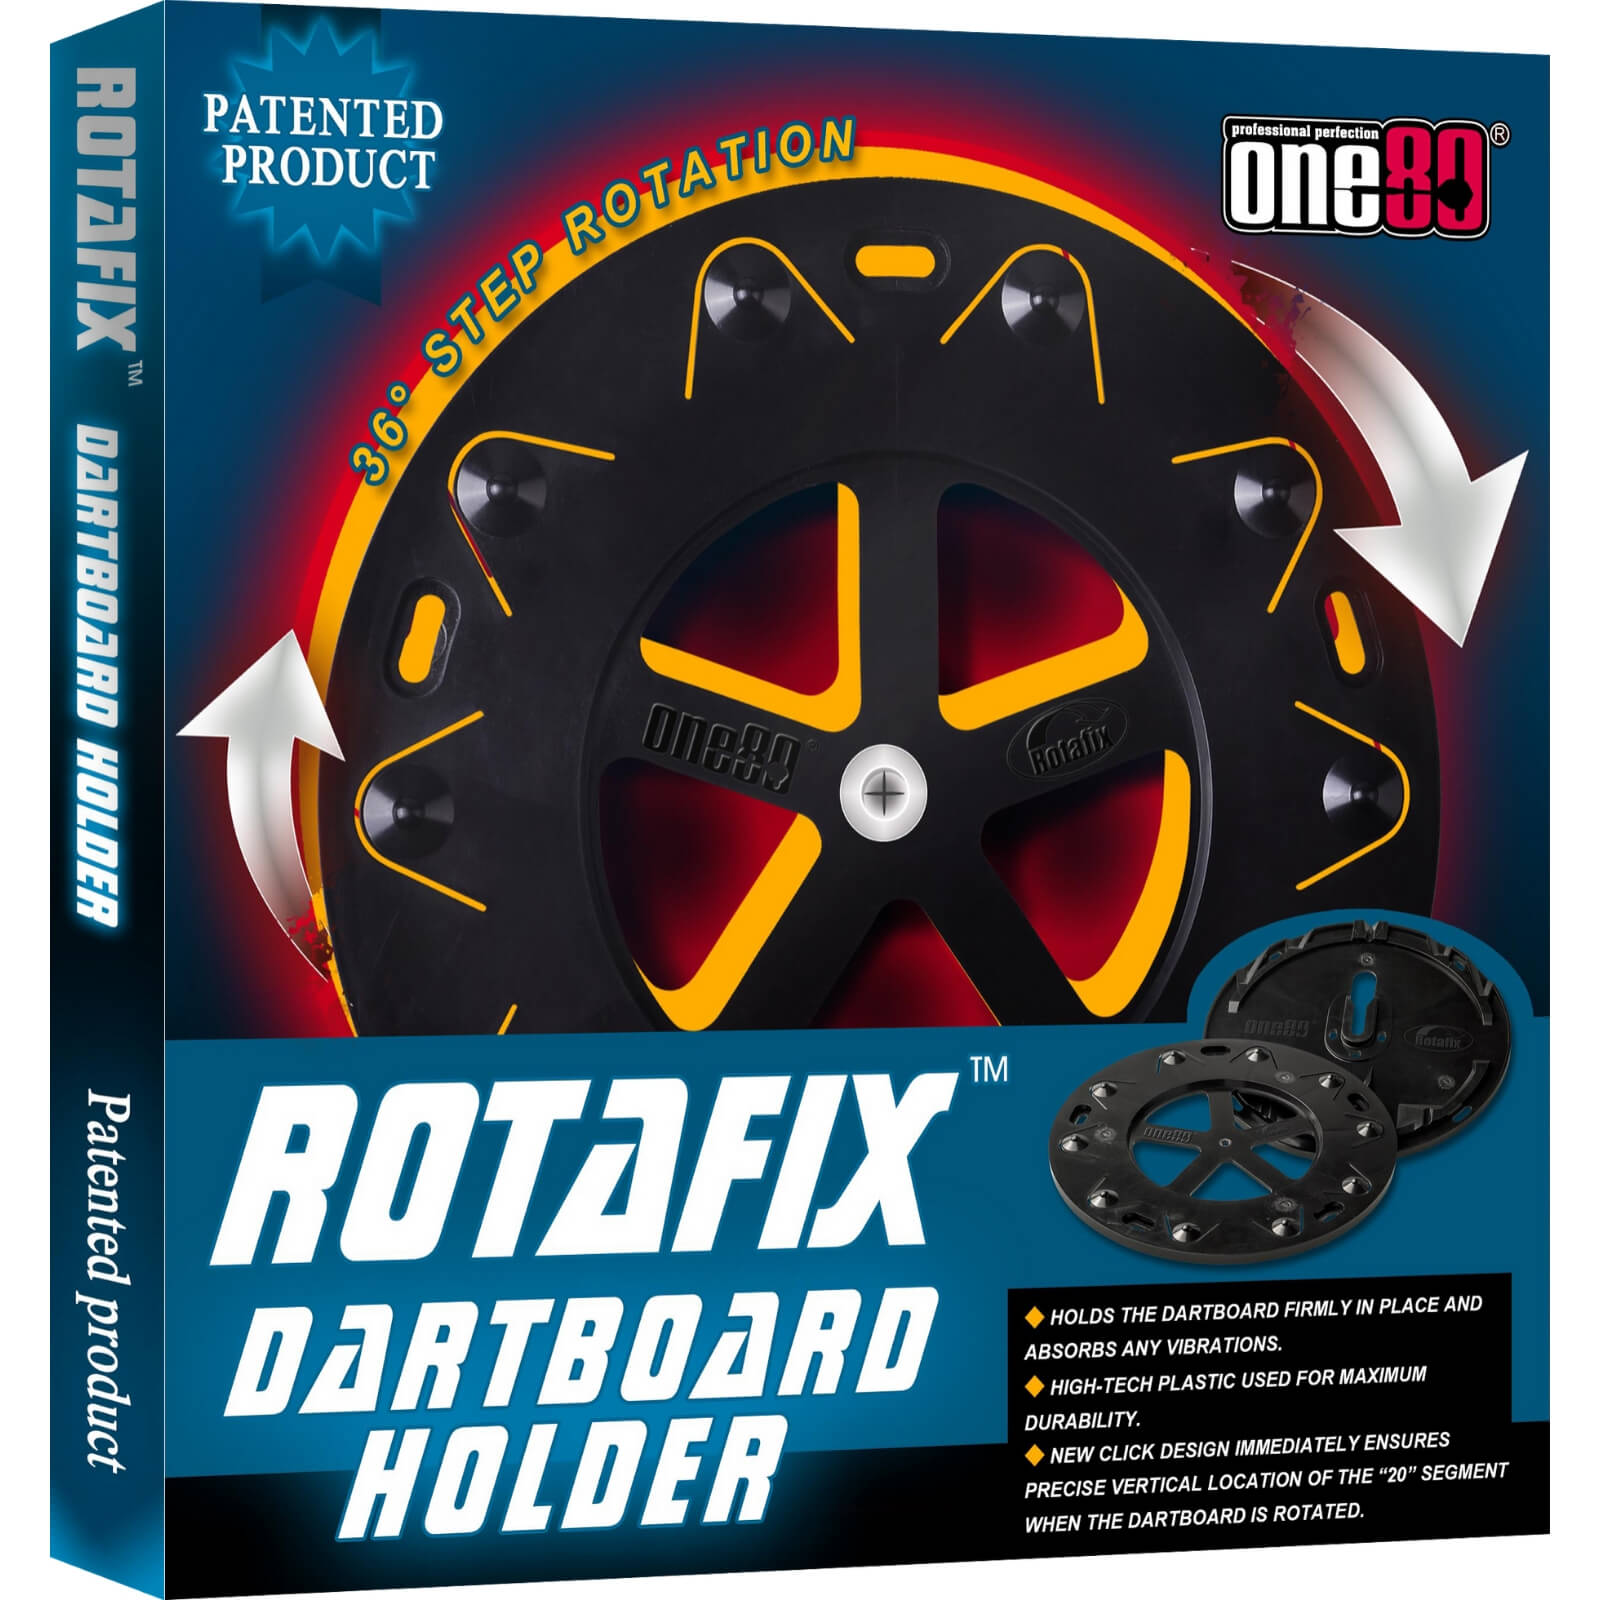 Dartboard Accessories - One80 - Rotafix Dartboard Holder